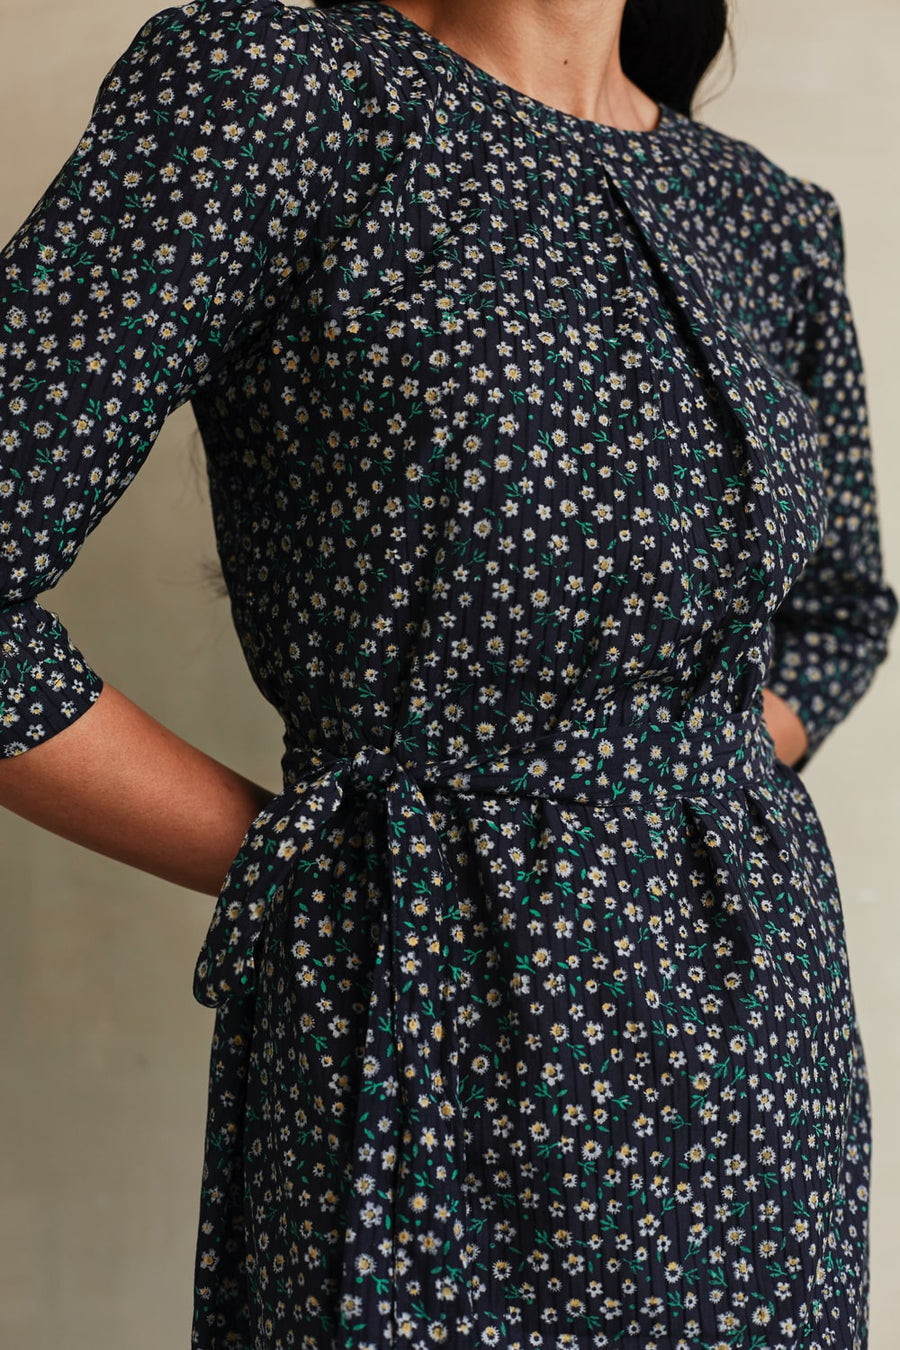 Floral Meadow Shift Dress - Ethical made fashion - onlyethikal